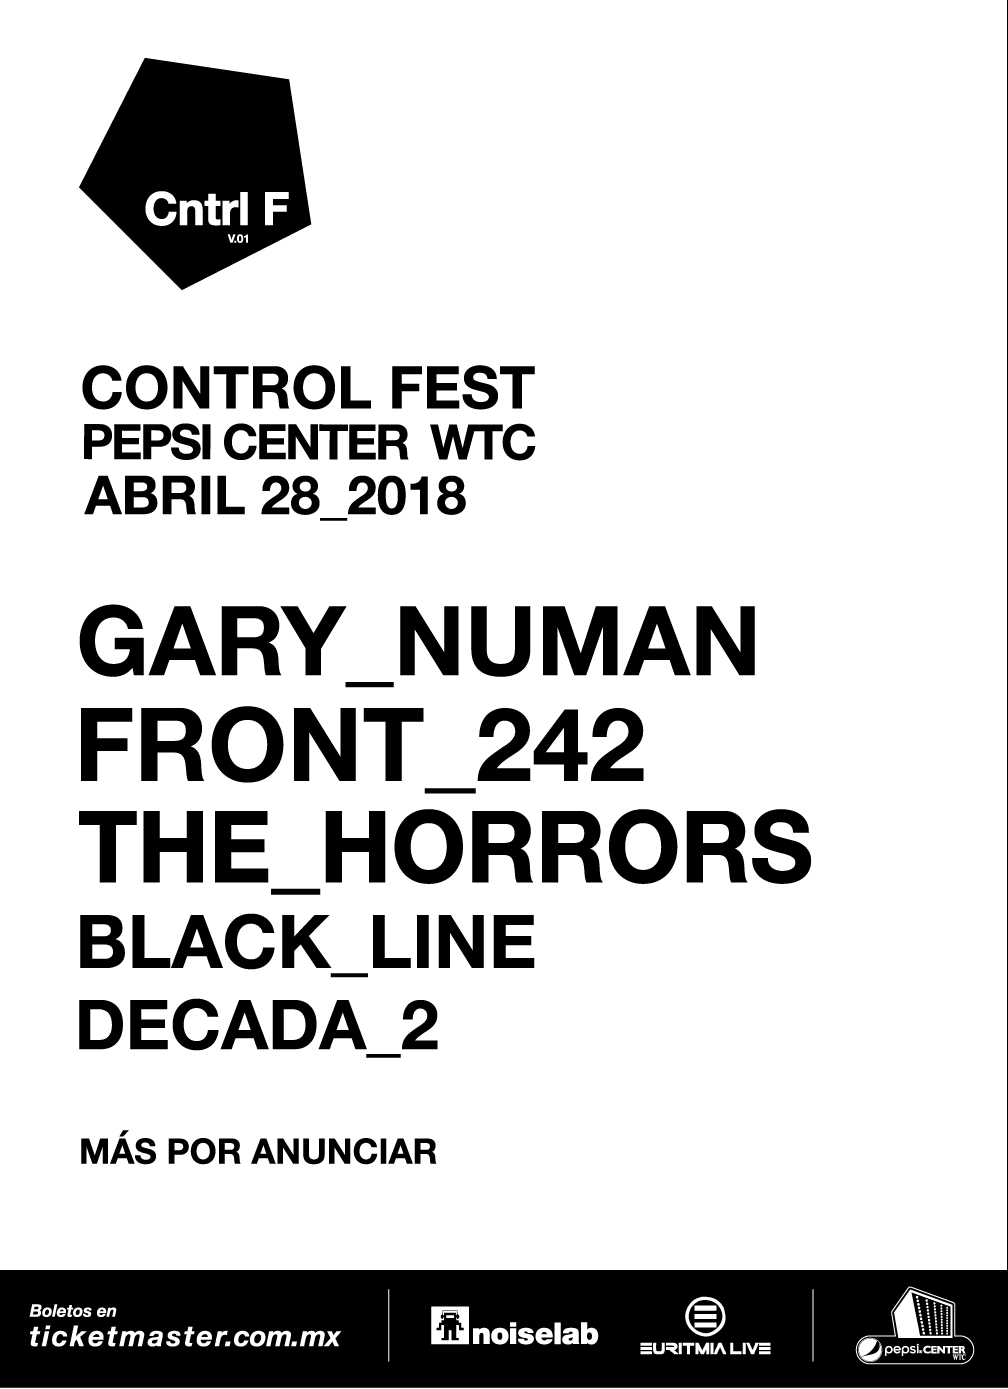 The Horrors se unen al control fest